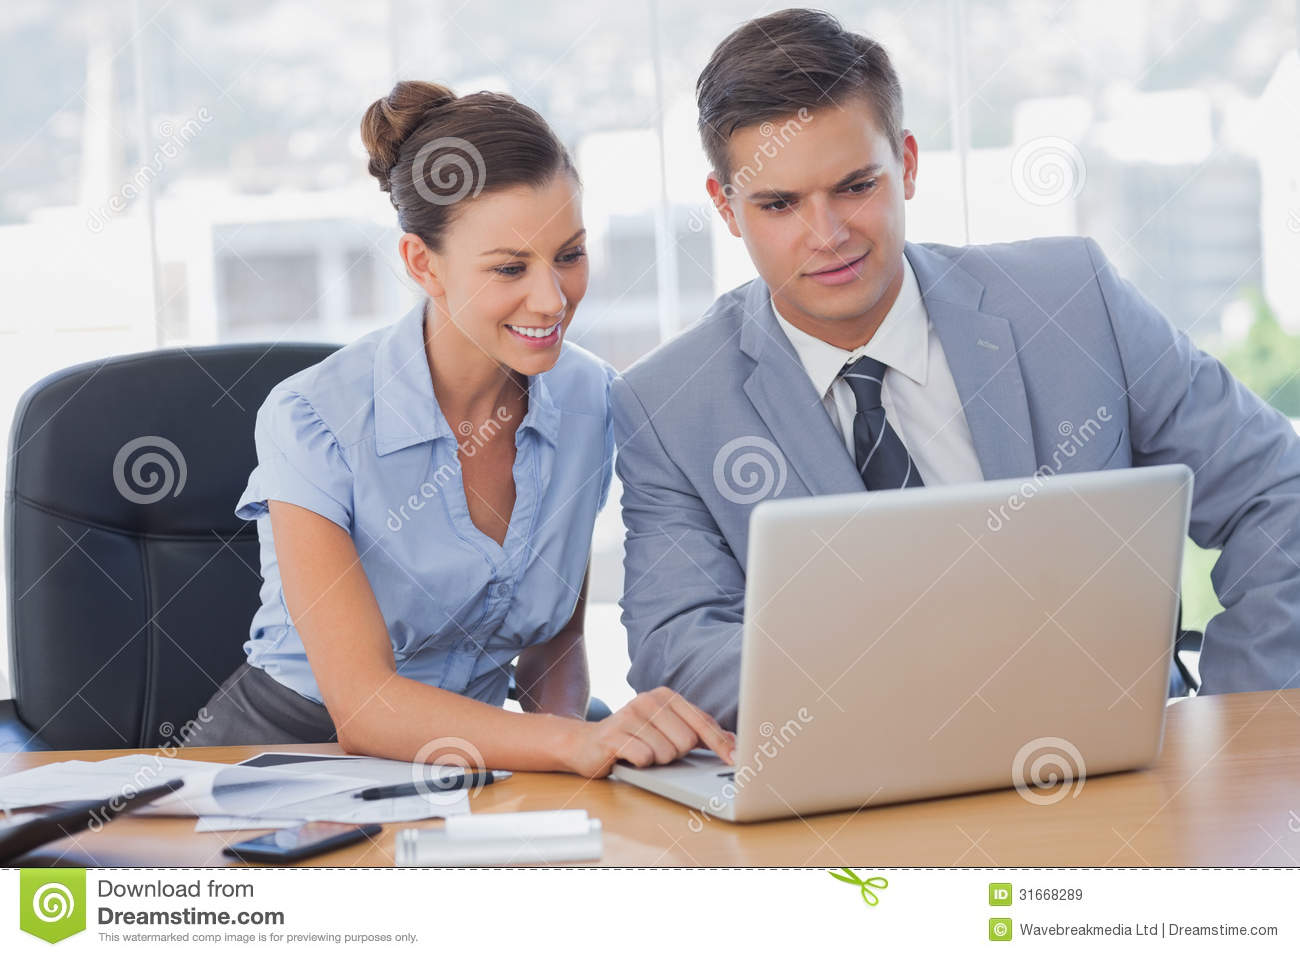 working in busines People on sick leave, paid leave or vacation are included, while working  proprietors, active business partners, unpaid family workers and home workers  are.